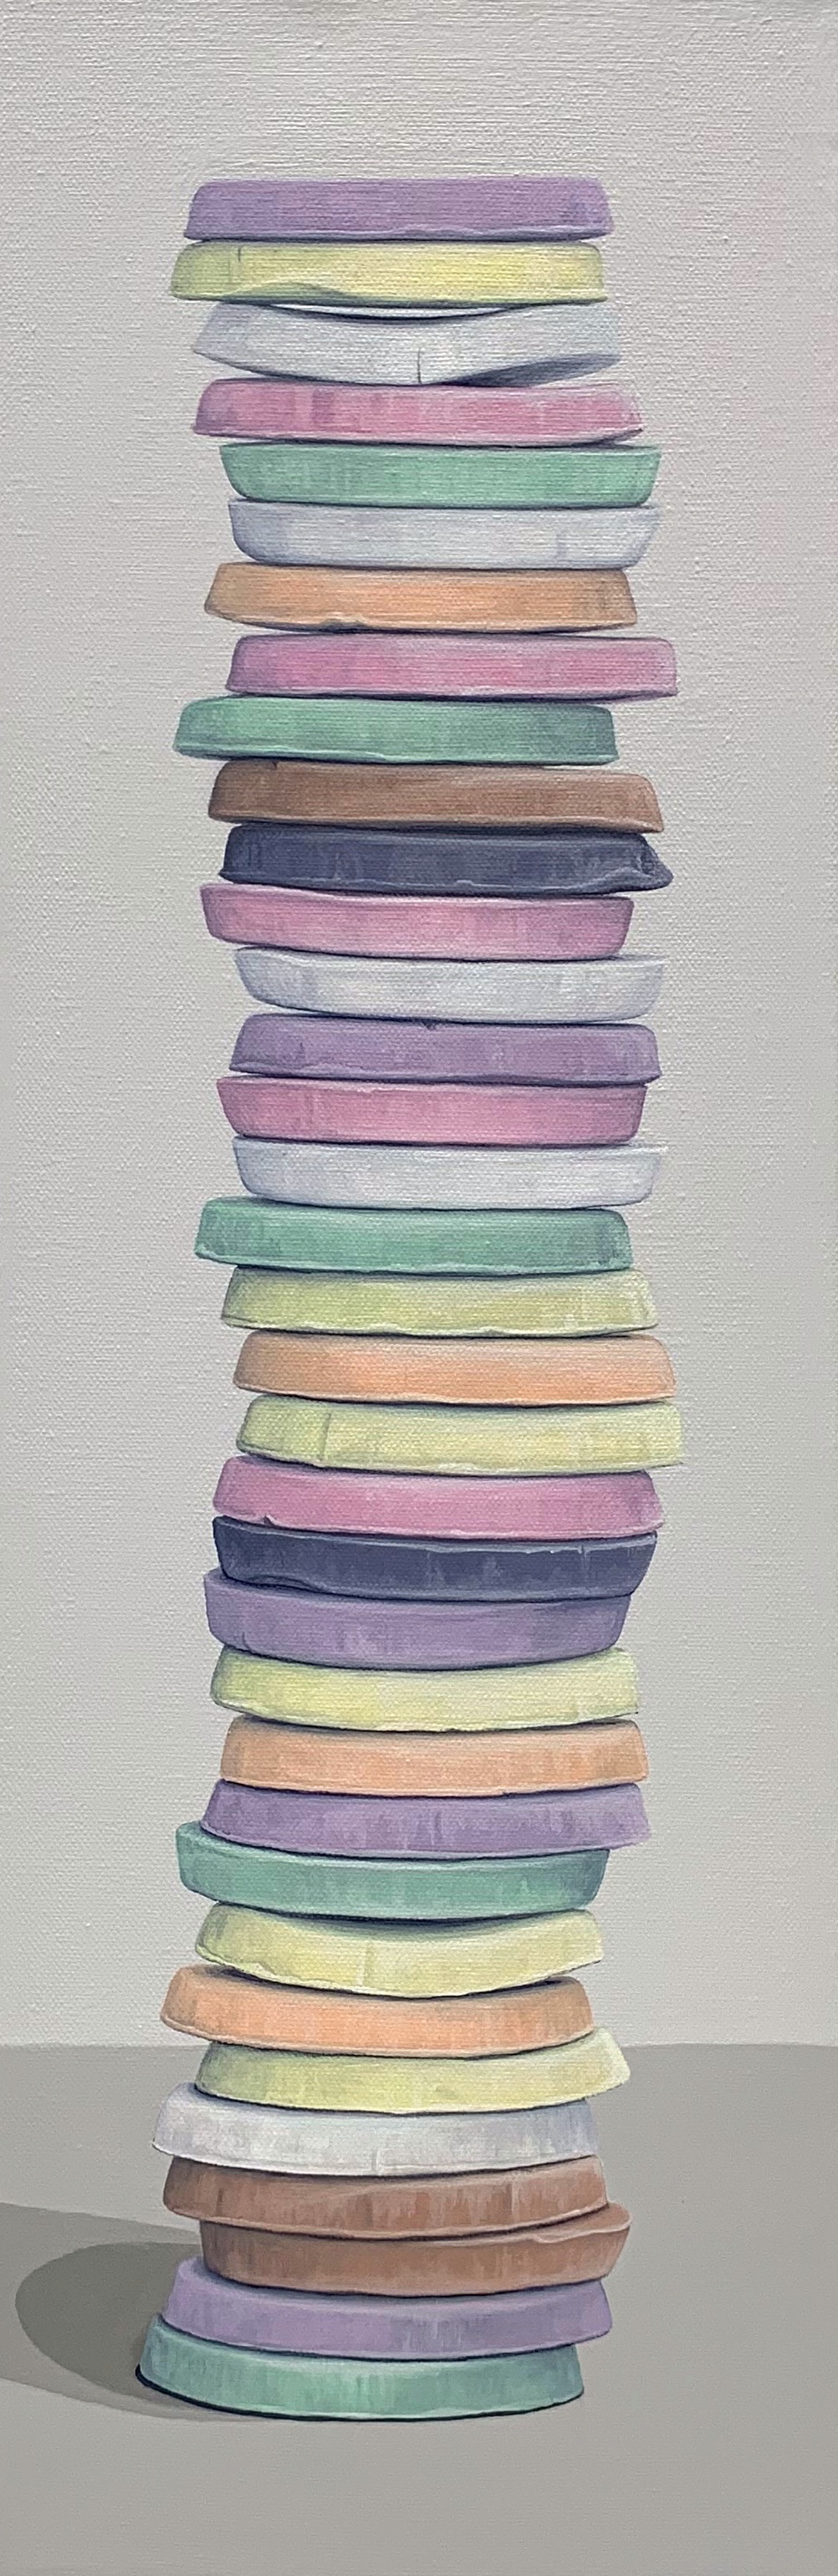 "Totem: Wafers  This wafer candy stack is built from 'An American Classic' candy, the Necco Wafer and is a full roll of 35 wafers. Stacks of deliciousness or cultural comment?  8"" x 24"" gallery wrapped canvas  $600.00"